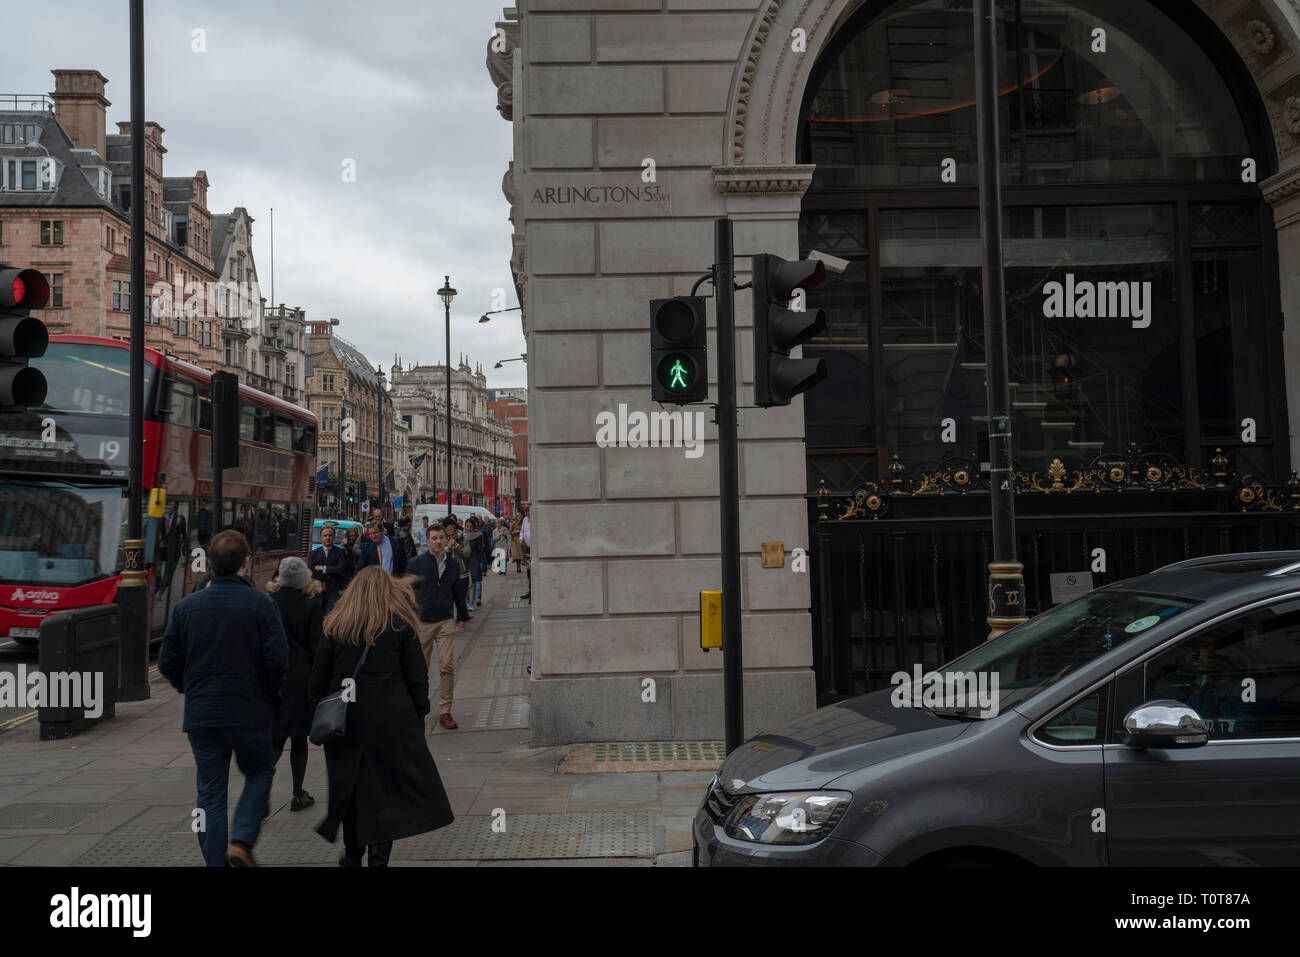 Grey spring afternoon on Arlington Street, St James's, London in United Kingdom Stock Photo